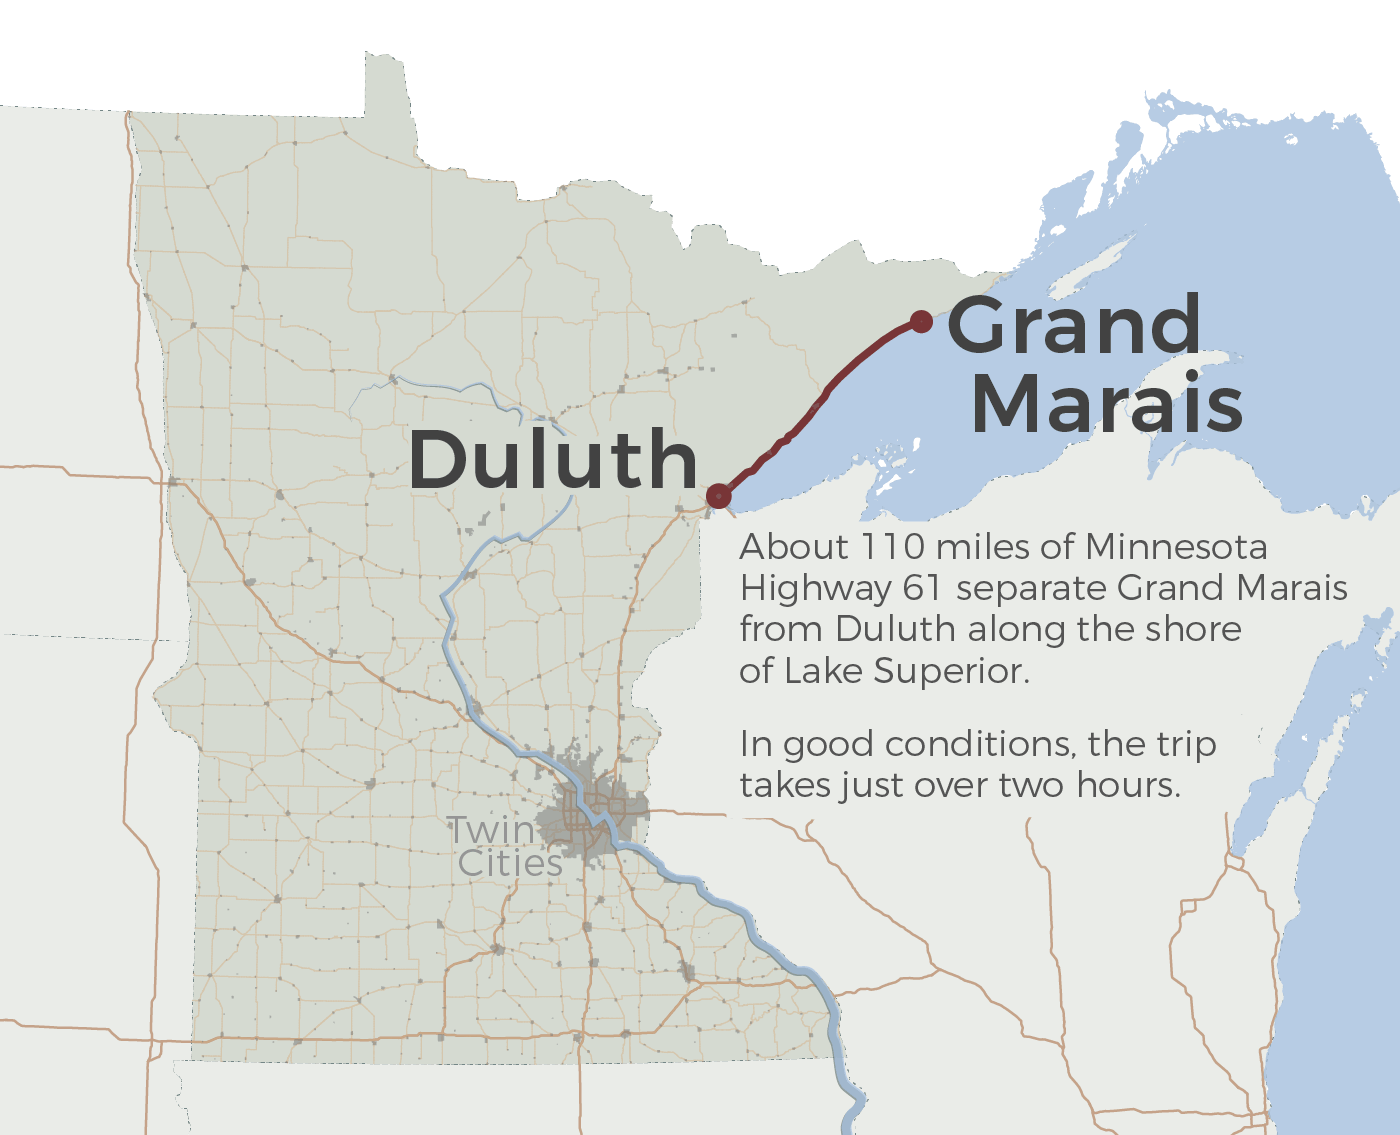 It is usually a two hour drive from Grand Marais to Duluth